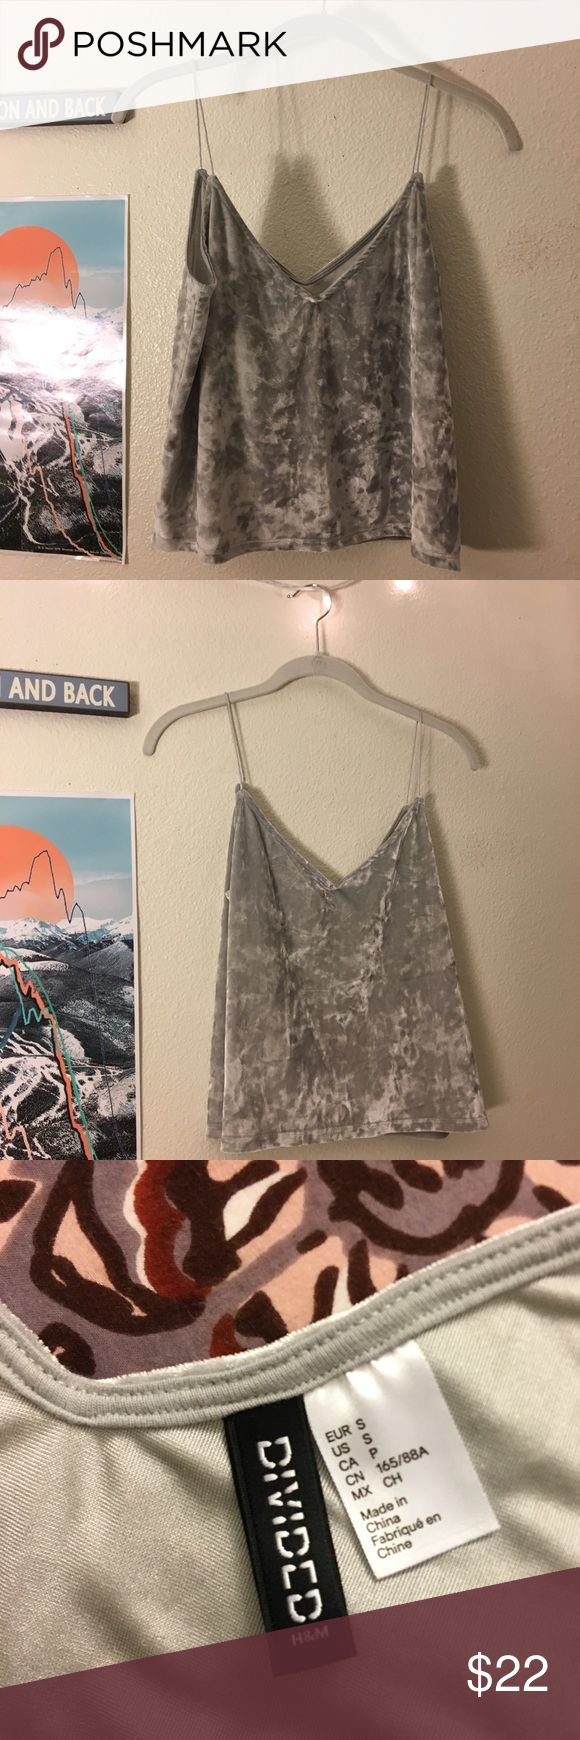 Silver crushed velvet top Sexy tank top, soft crushed velvet in trendy silver. Only worn once! H&M Tops Tank Tops